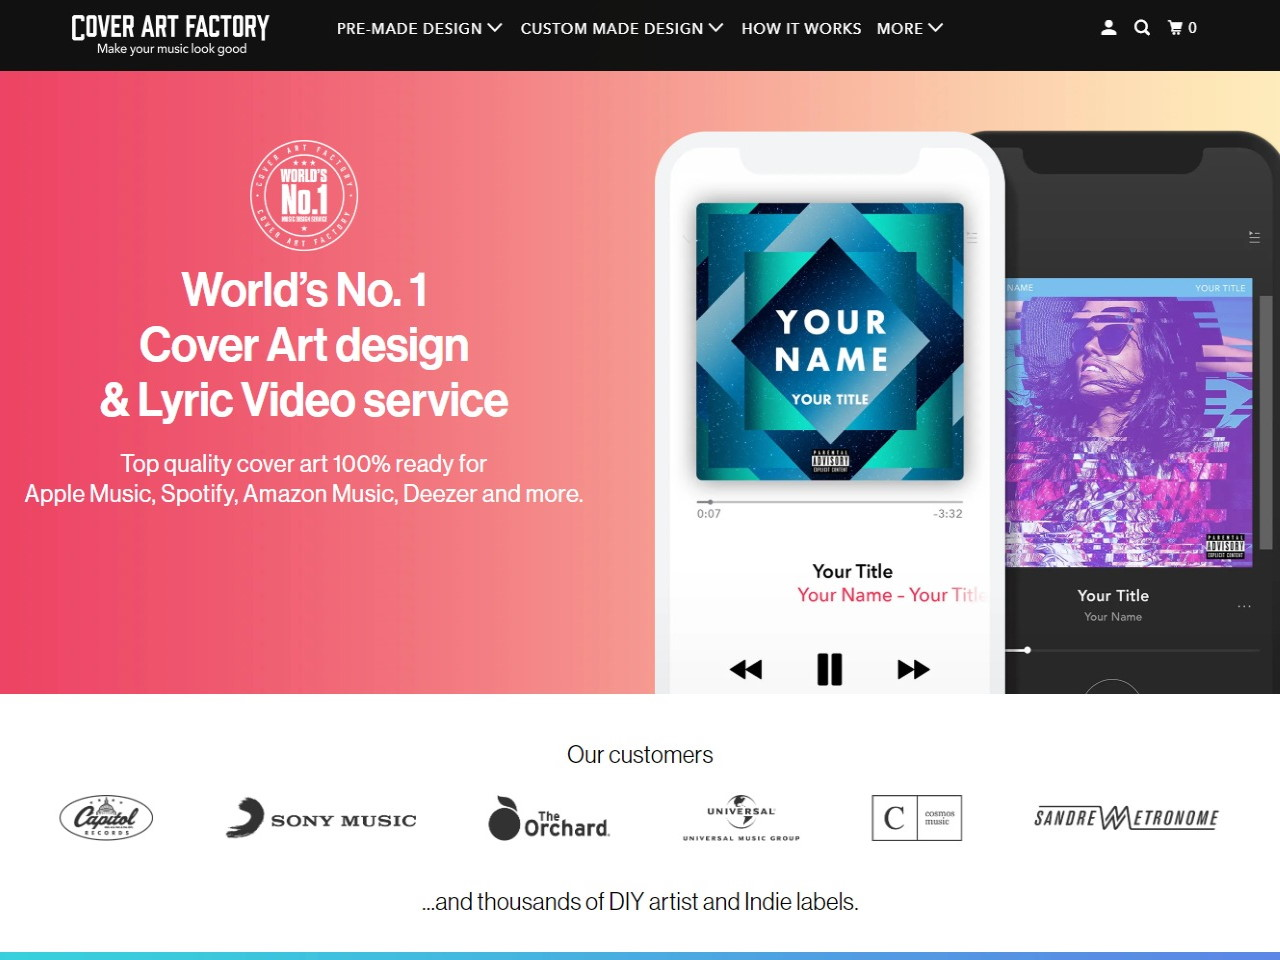 Cover Art Factory